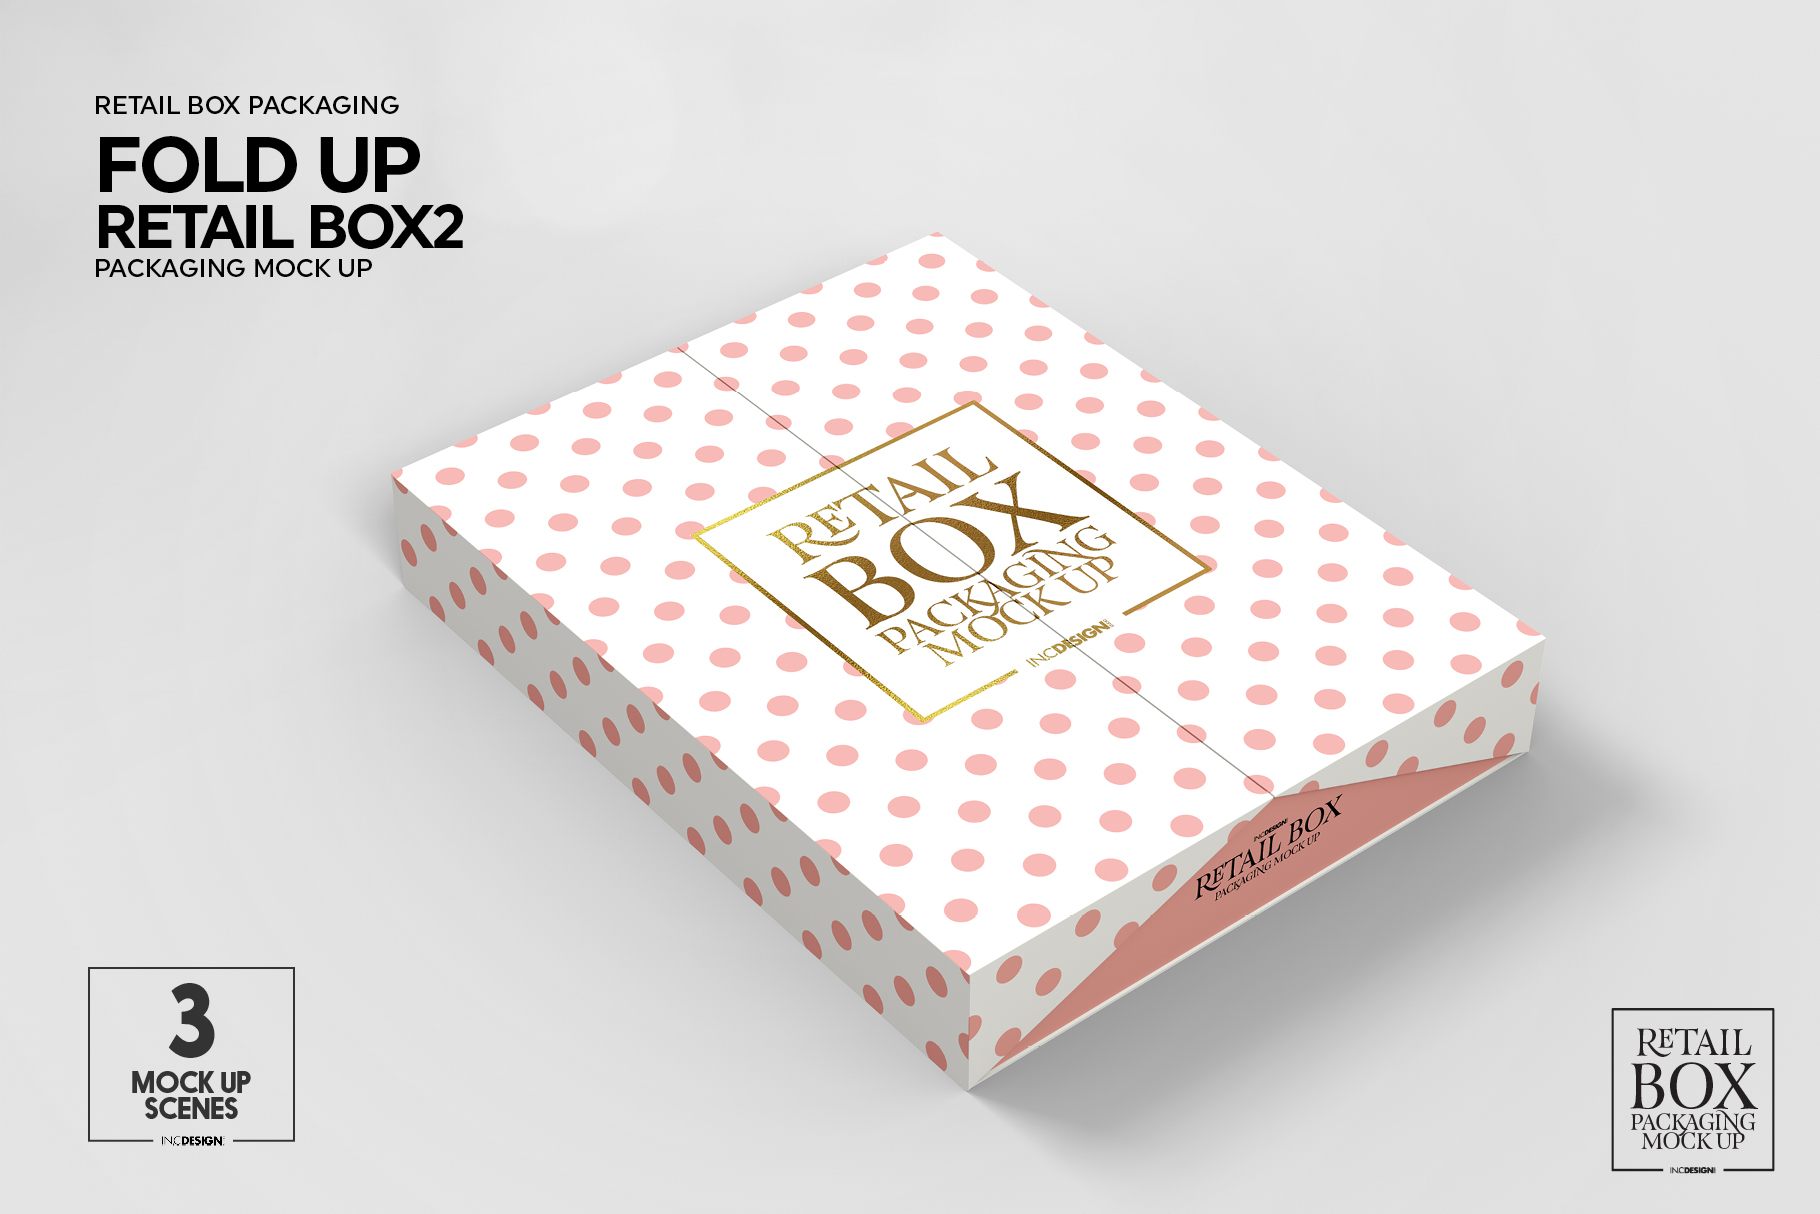 Fold Up Retail Thin Box Packaging Mockup example image 8